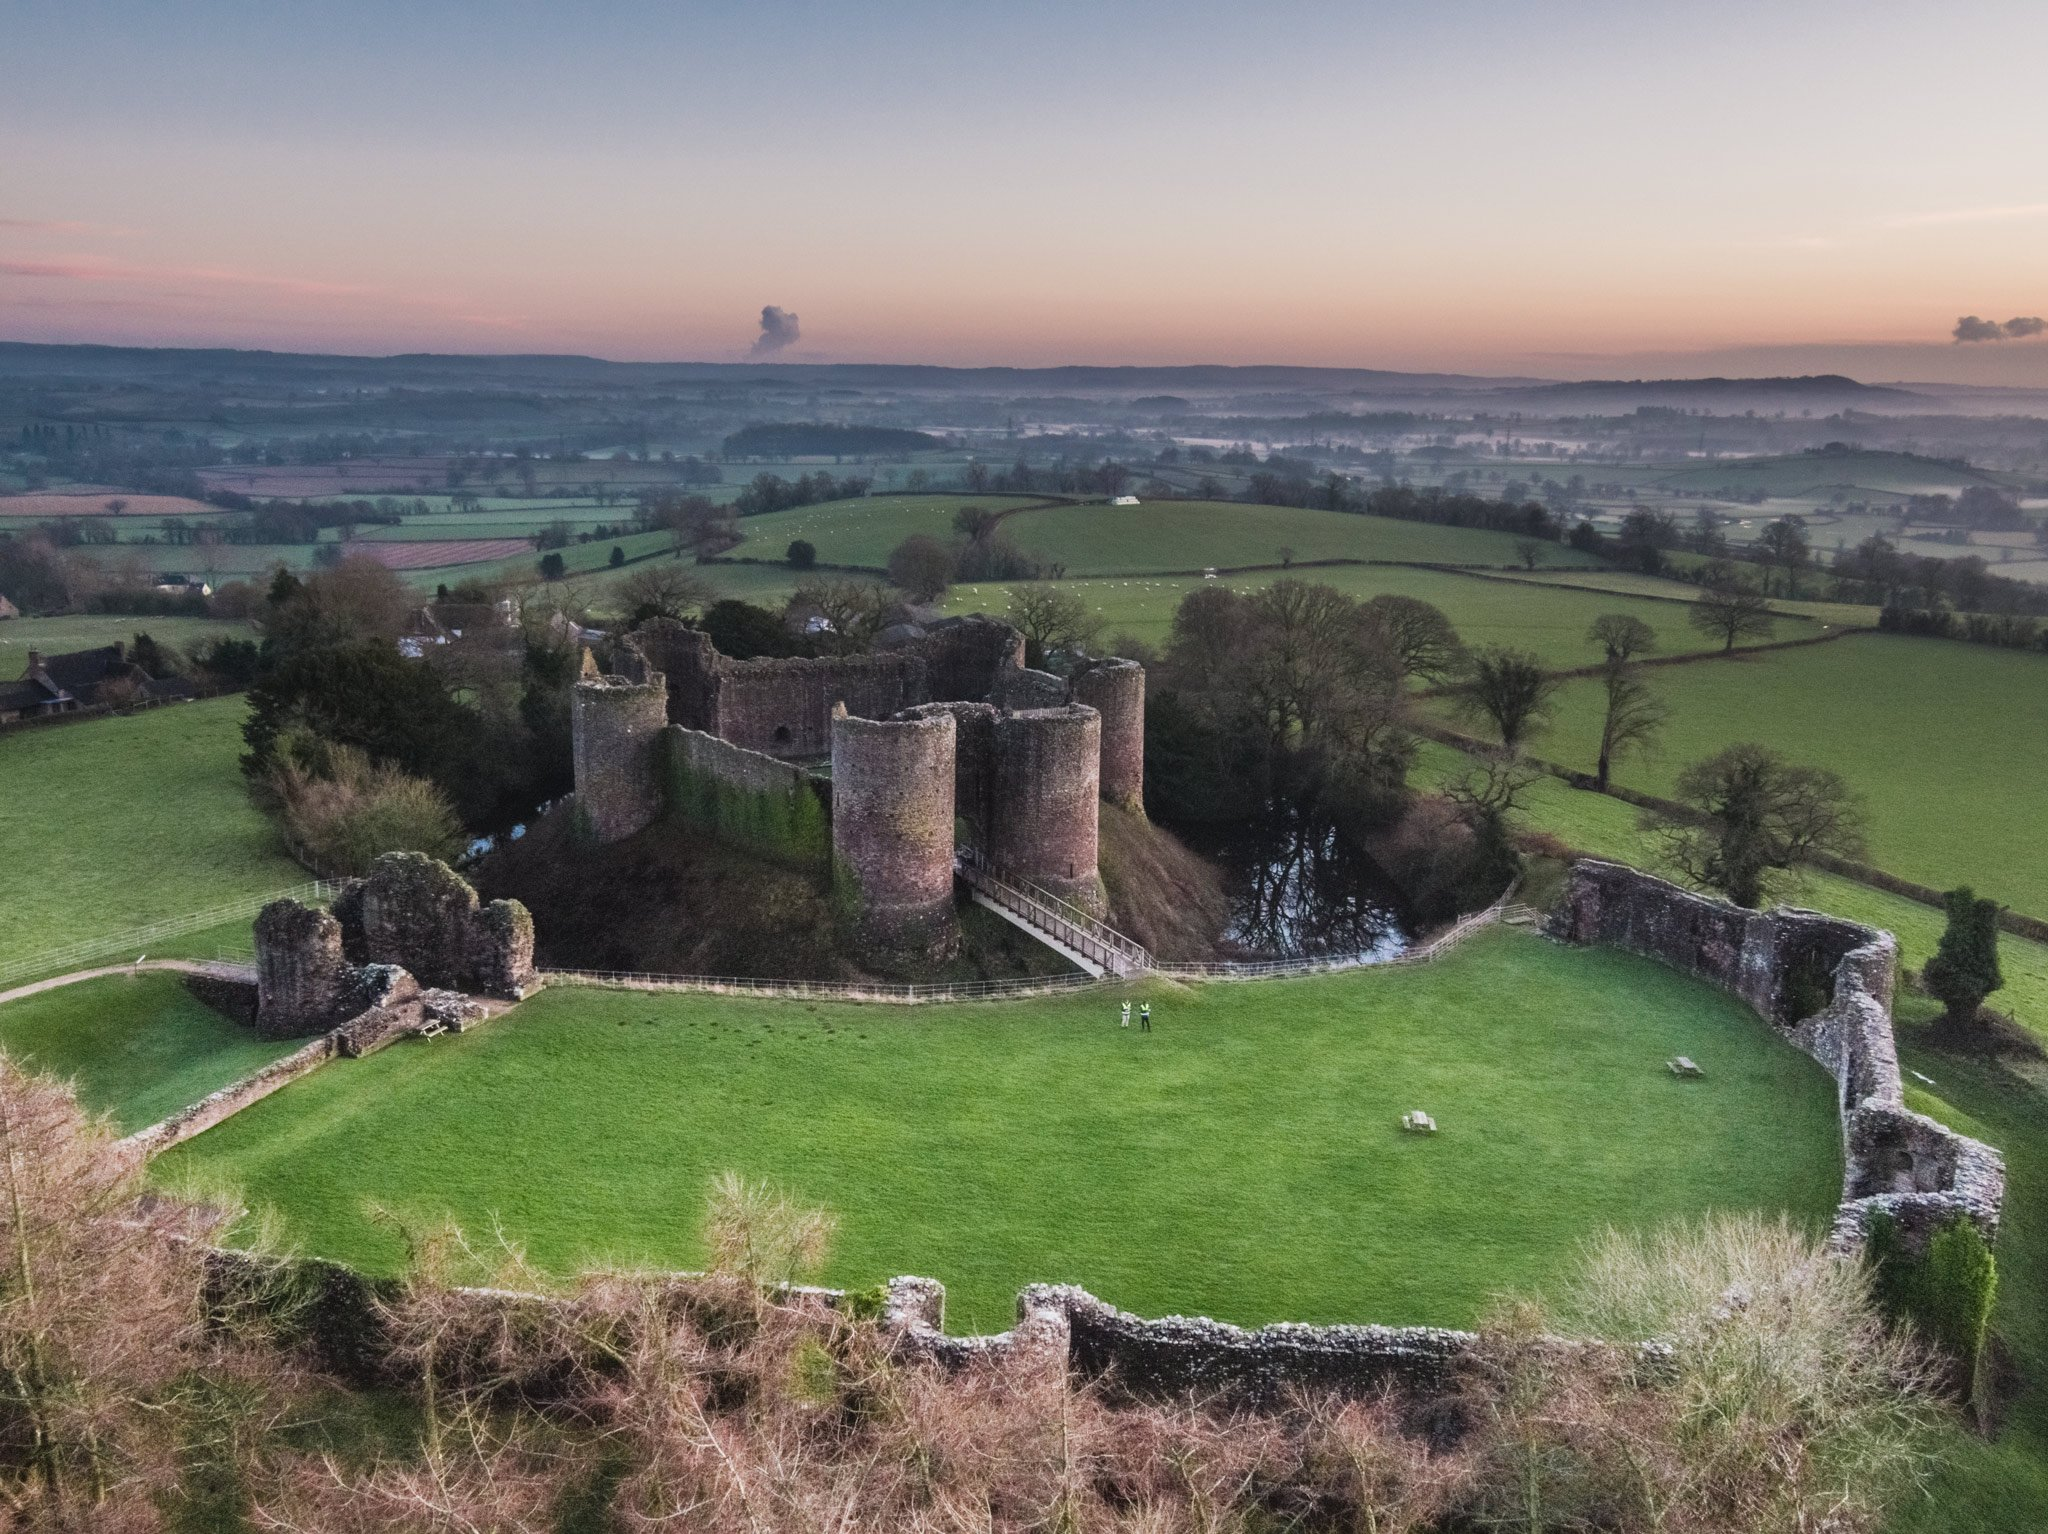 Aerial photography of a castle at sunset